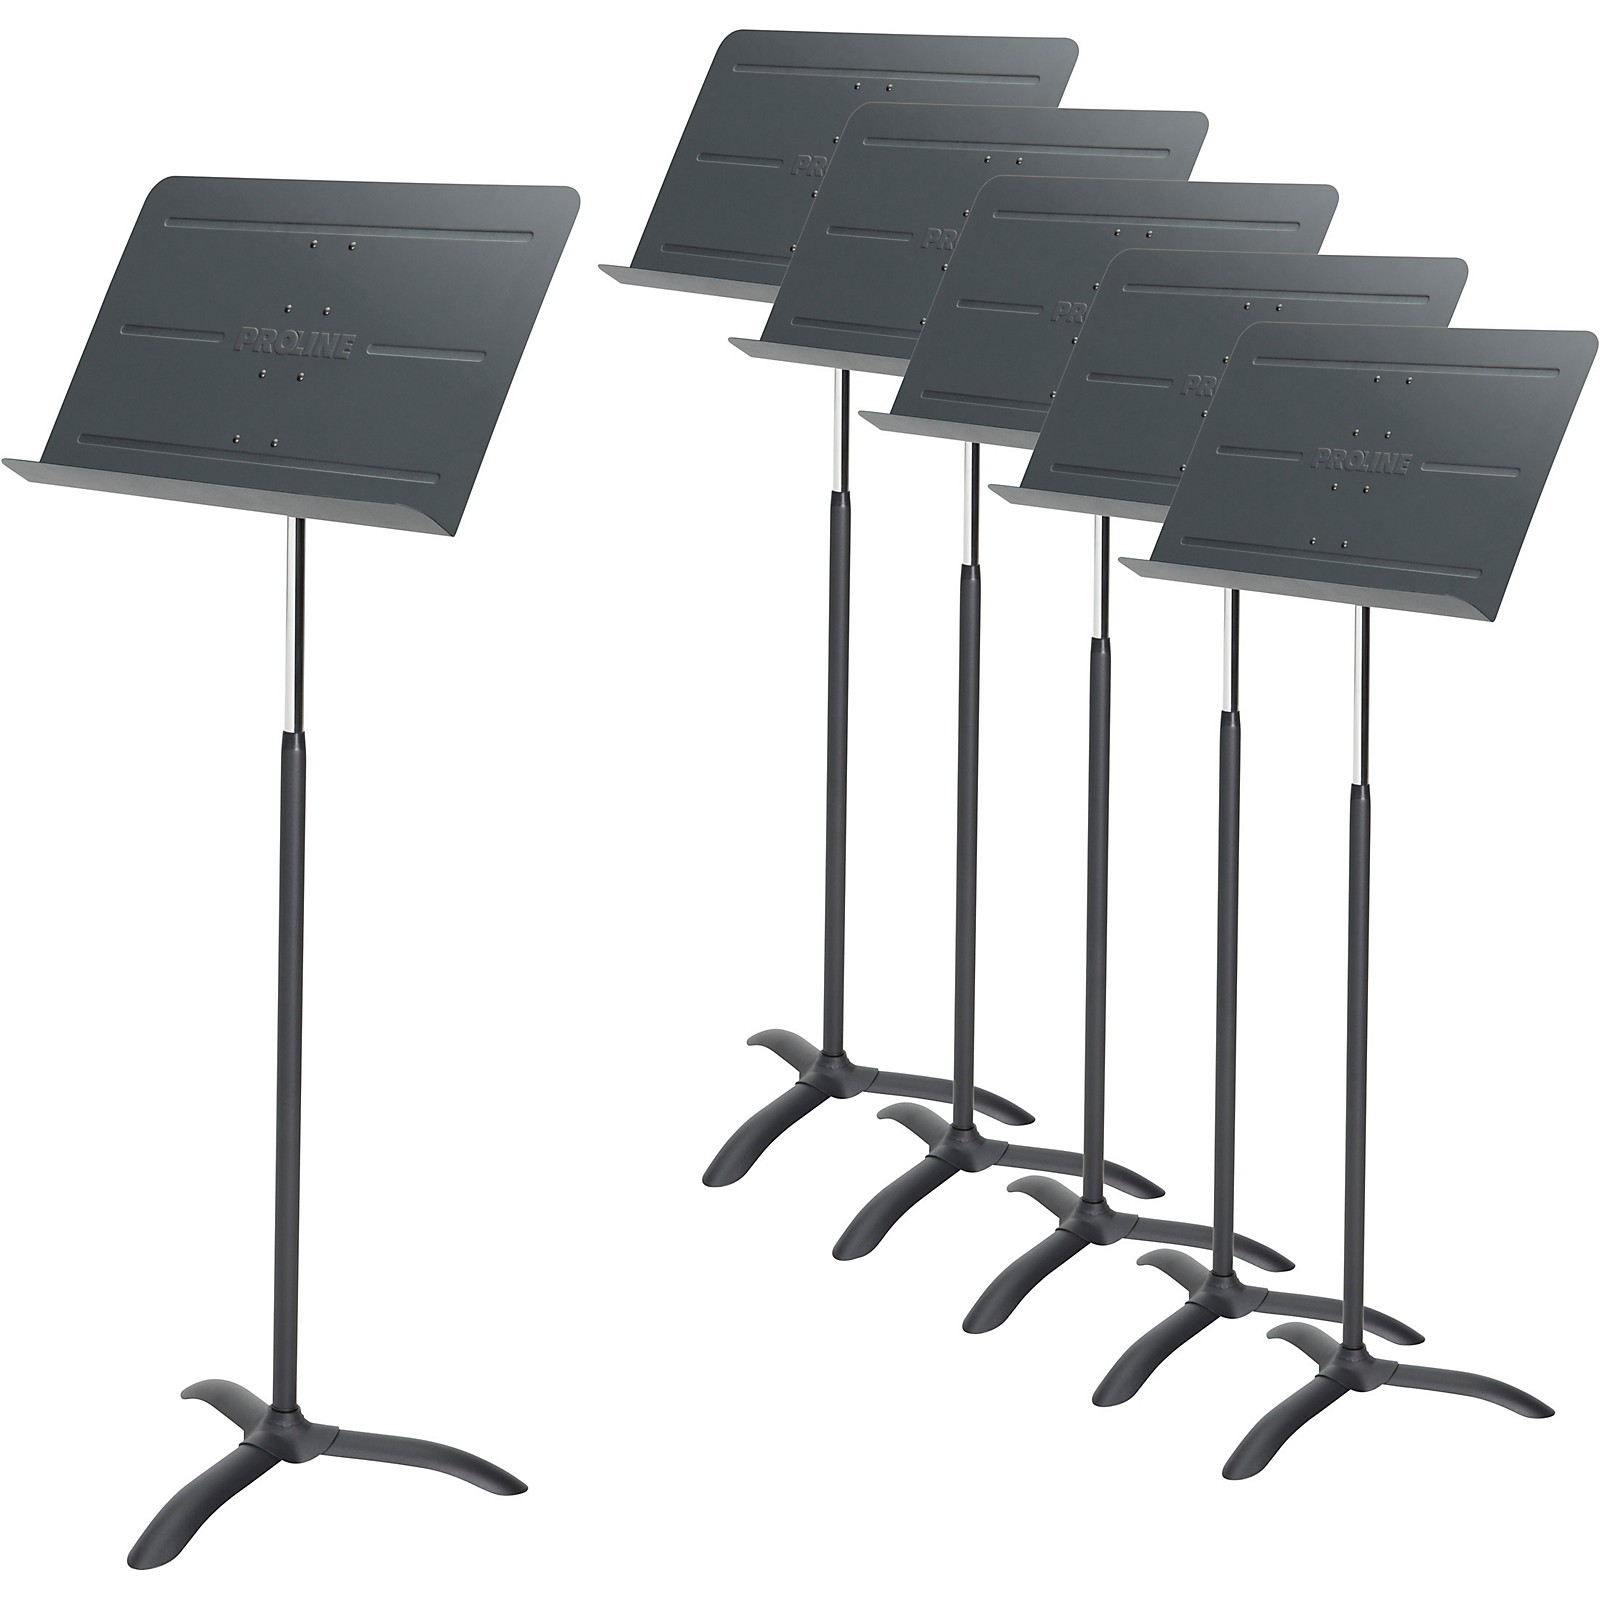 Proline 6-Pack Professional Orchestral Music Stand